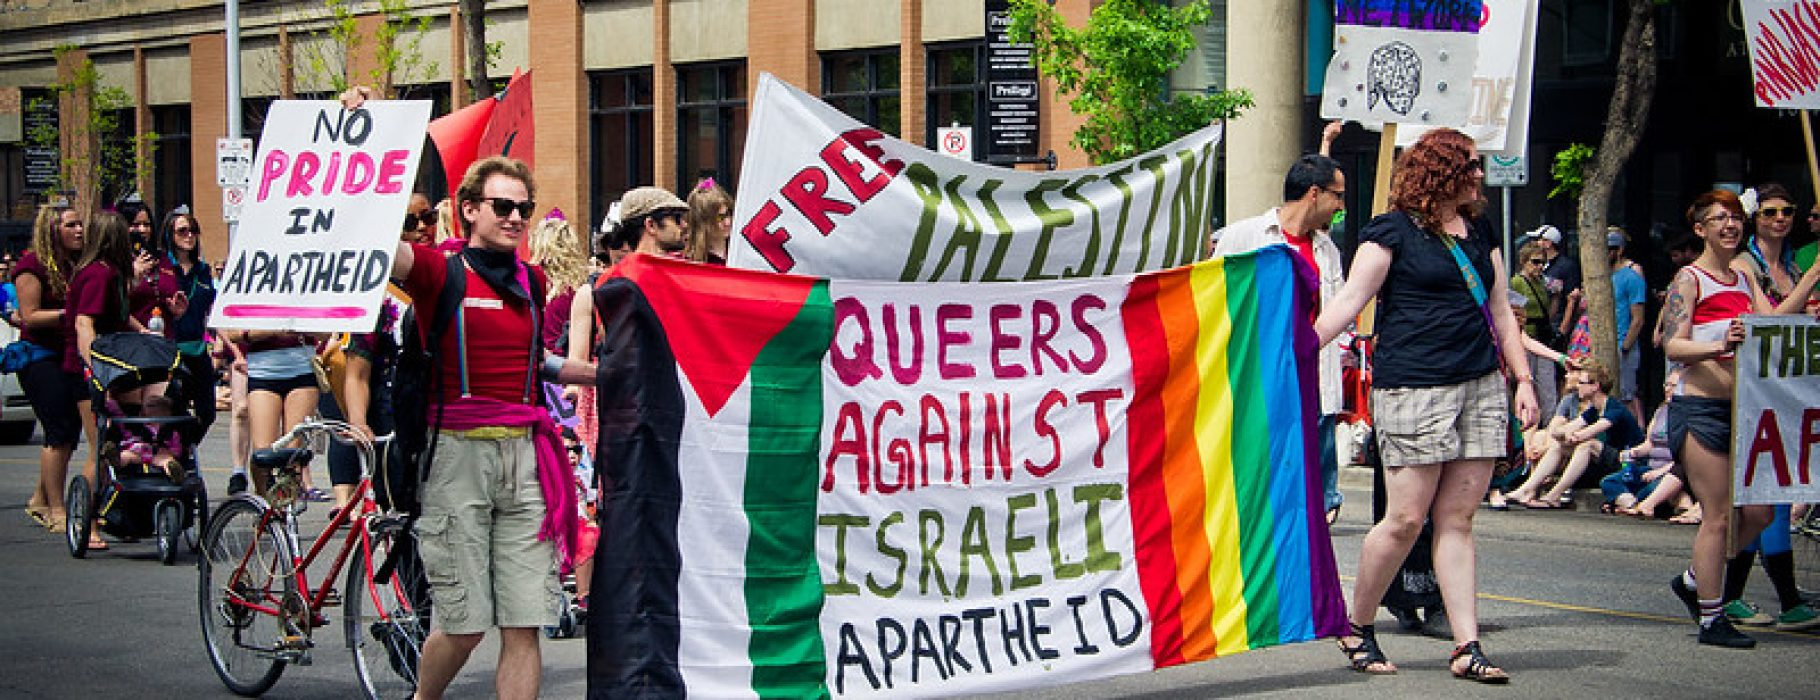 Two people carry a banner in a Pride march which says